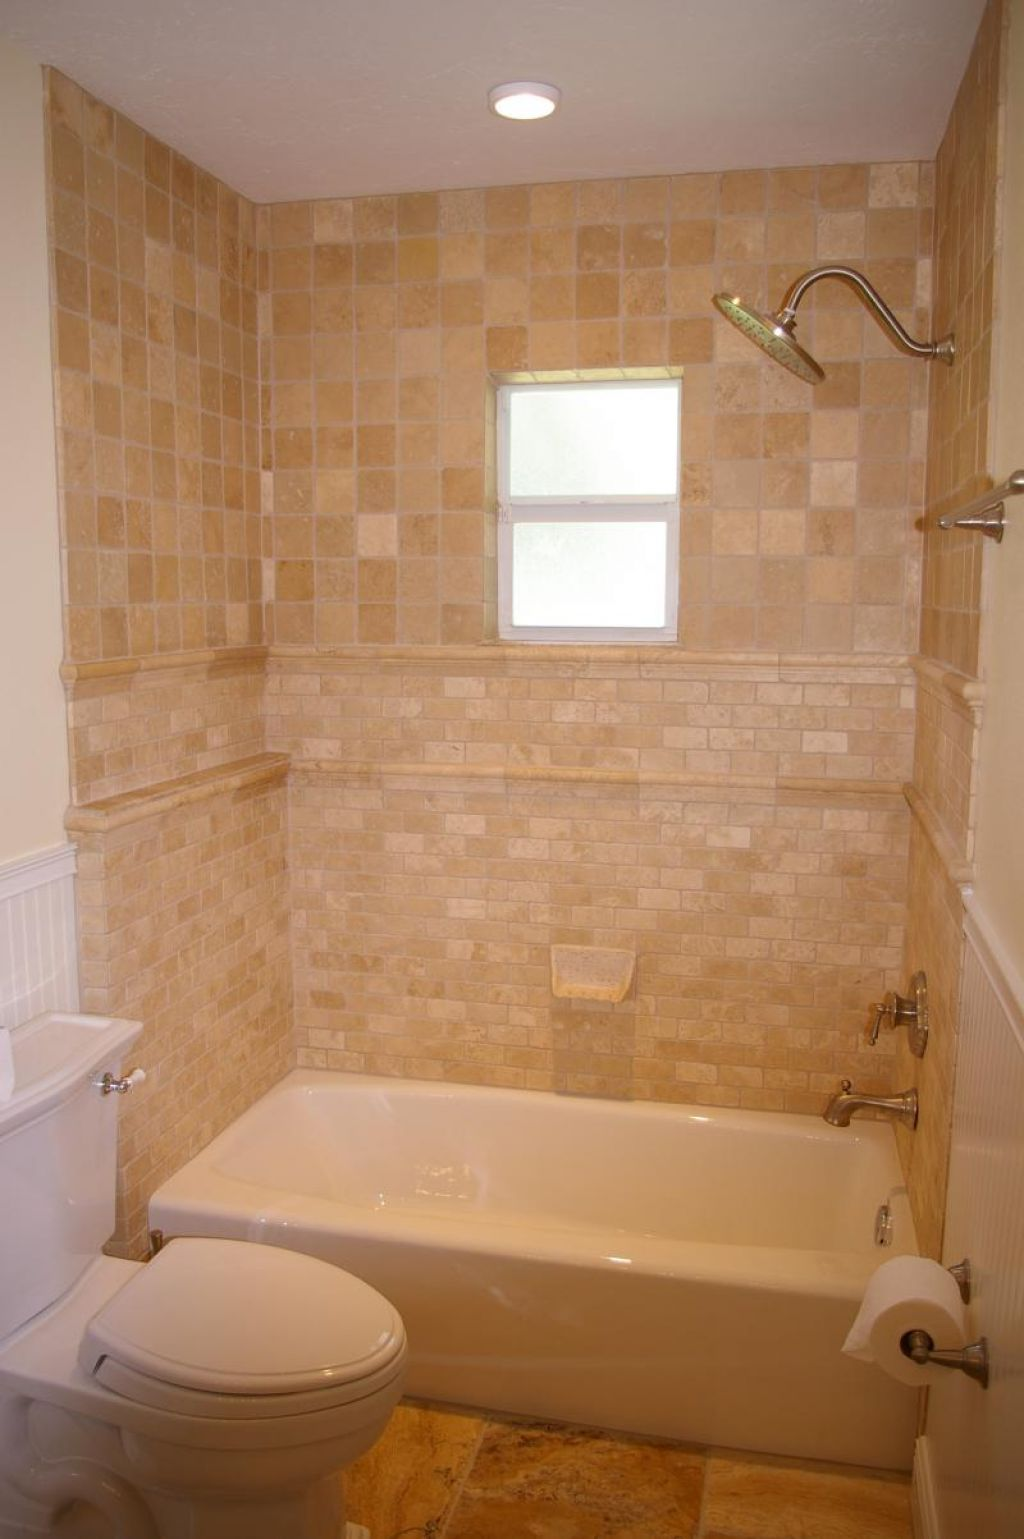 30 shower tile ideas on a budget for Bathroom wall remodel ideas